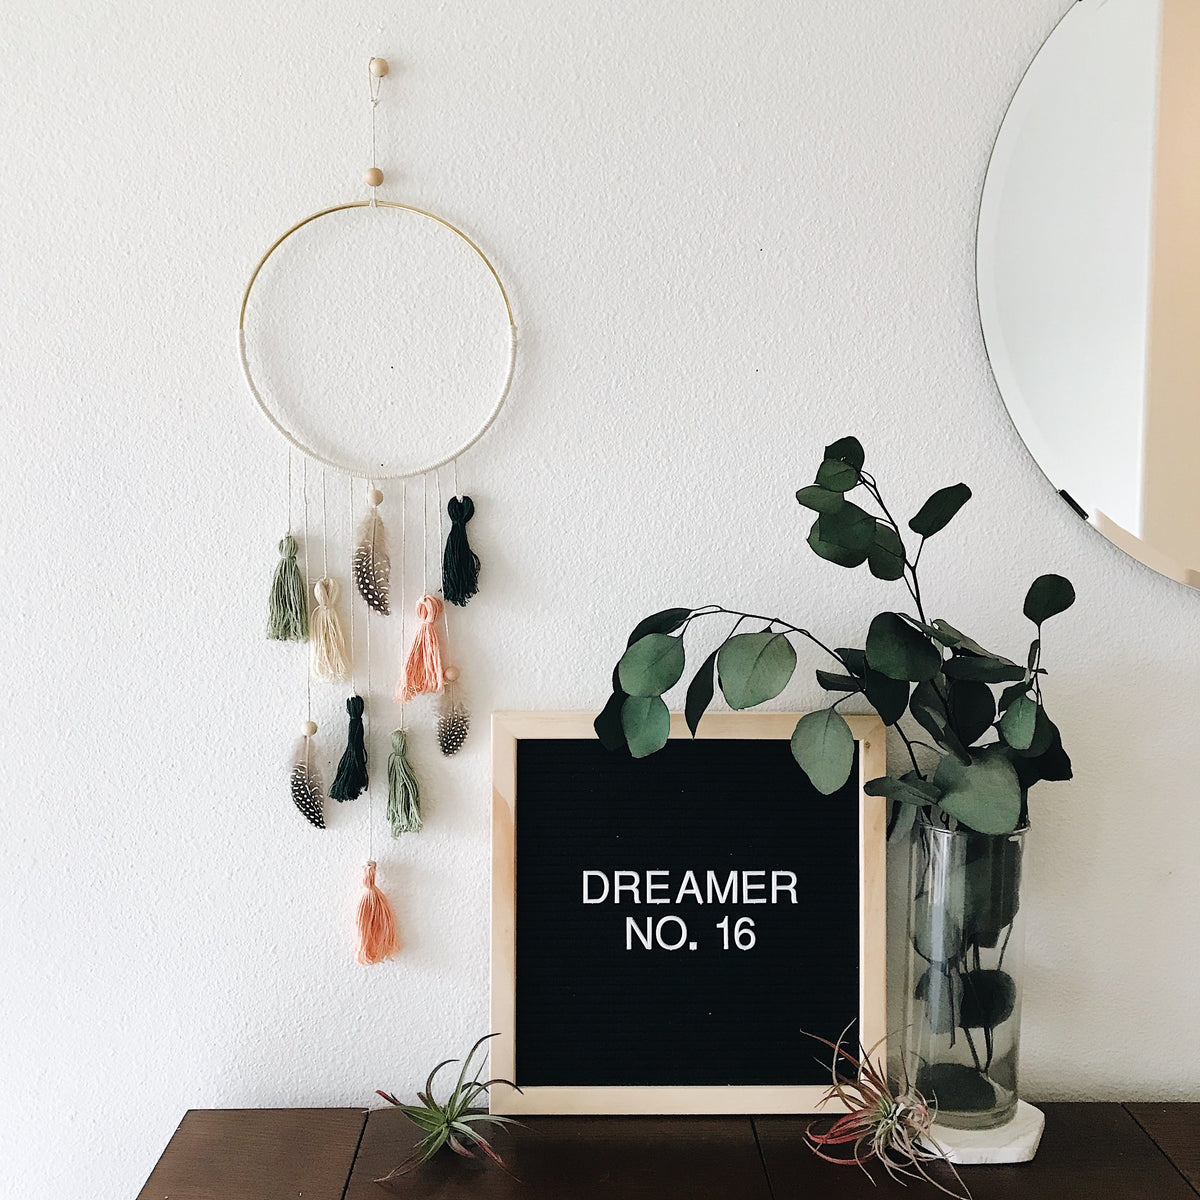 Dreamer No. 16 | 100 Days of Dreamers